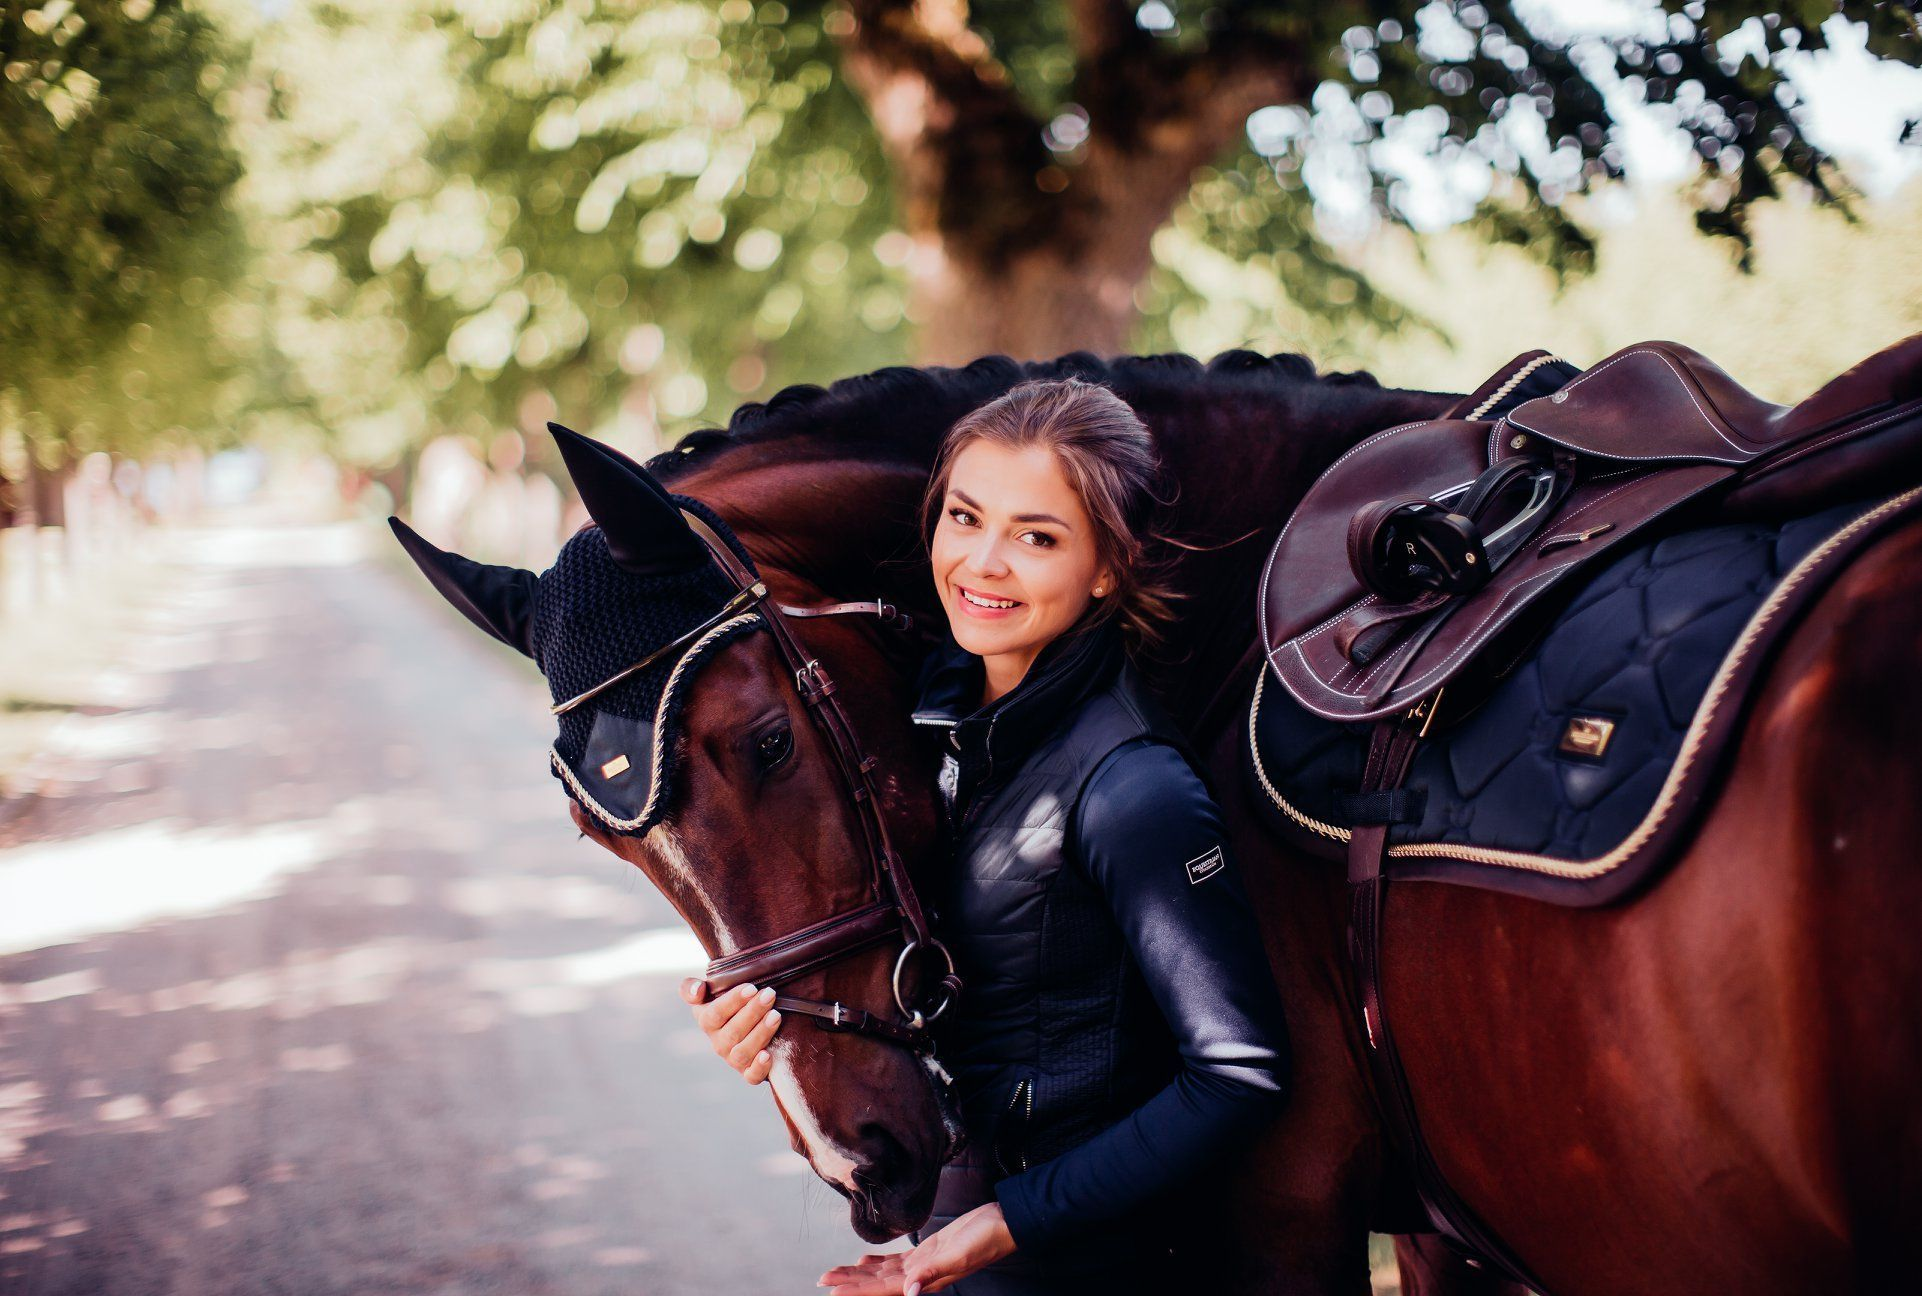 Horseriding Horserider Equine Just So In Love With Equestrian Stockholm Equestrian Eventing Horses Horse Riding